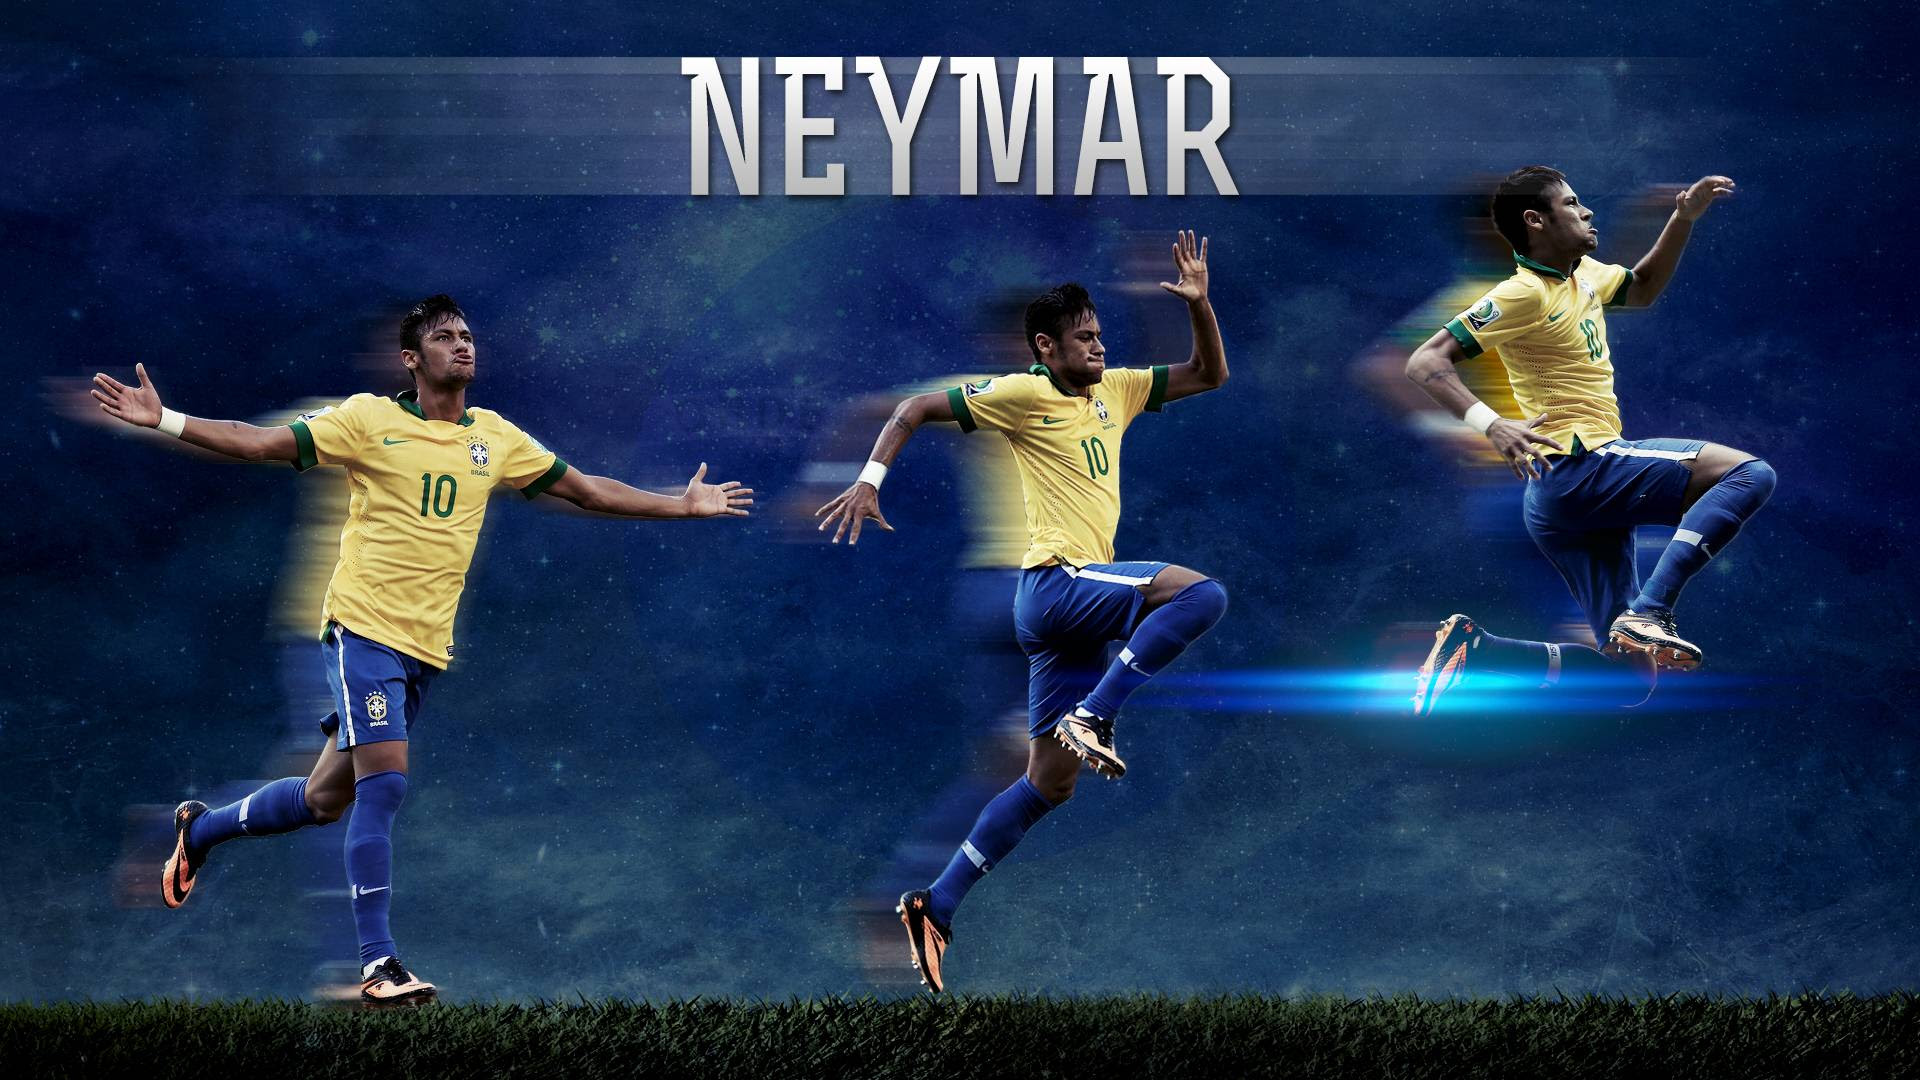 Neymar Jr Wallpapers 2015 HD - Wallpaper Cave